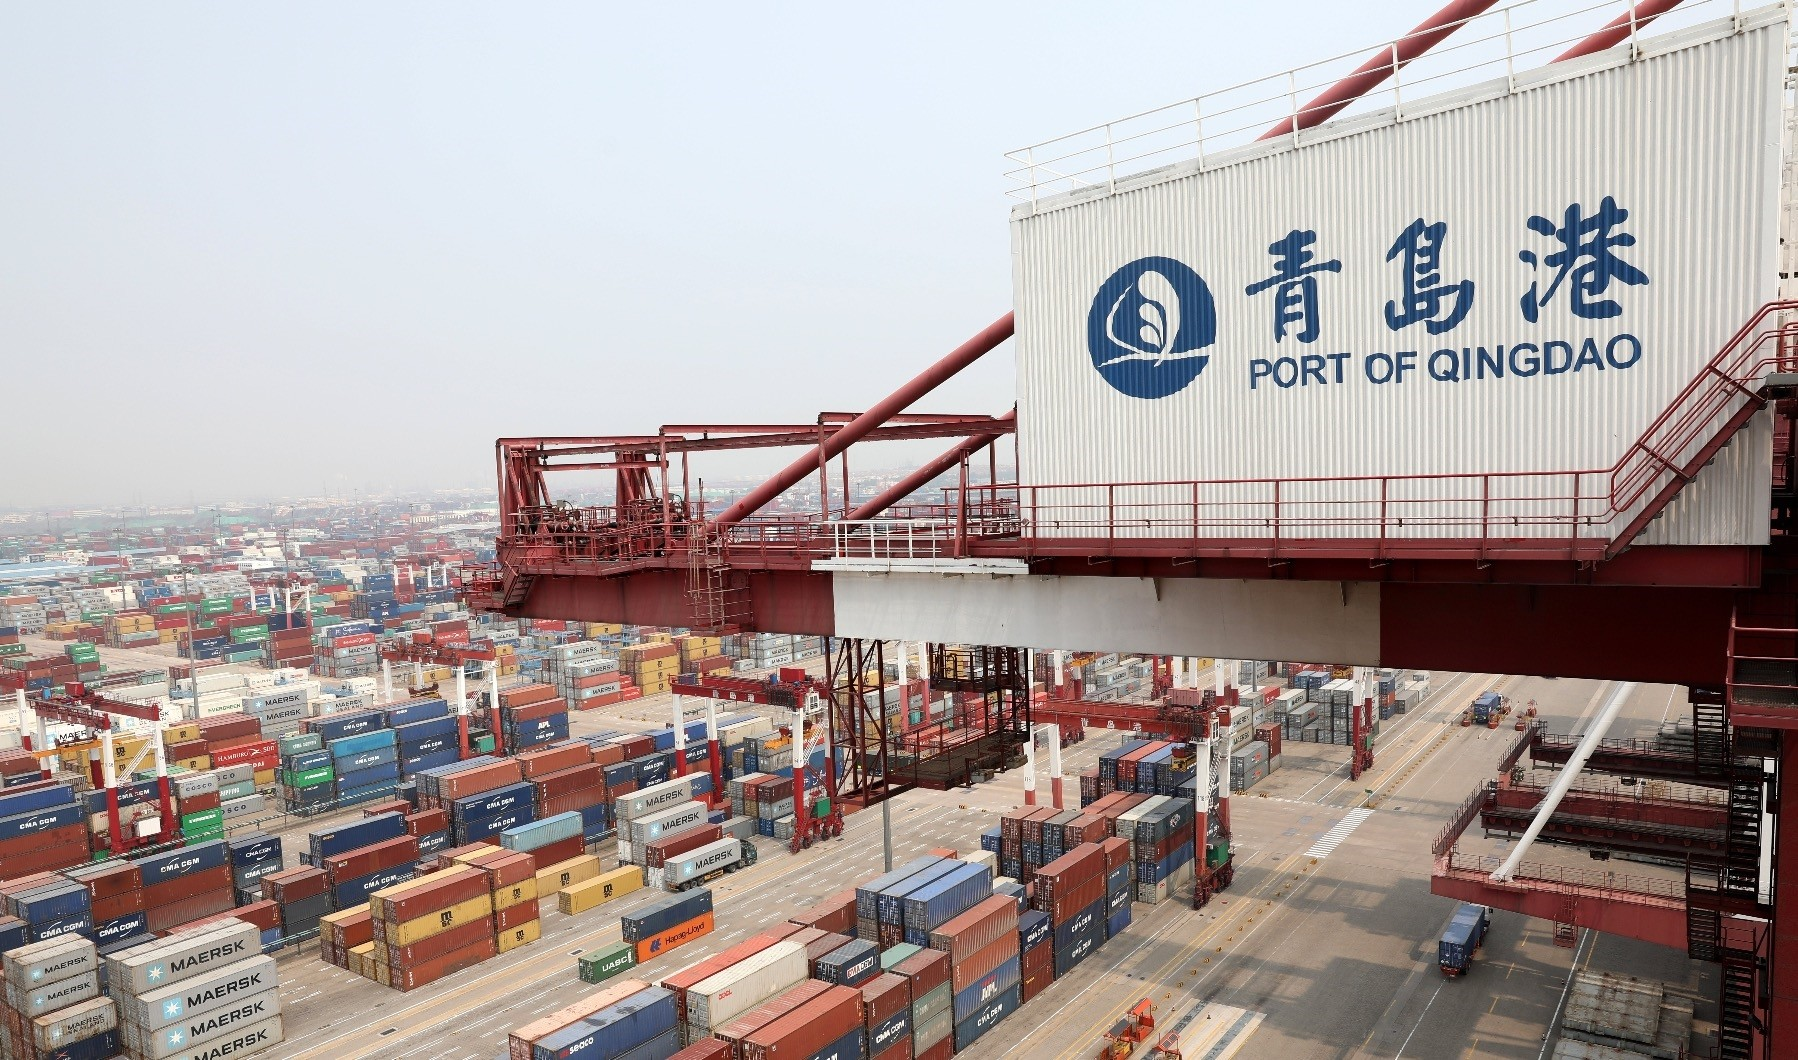 A general view of containers at the Port of Qingdao in Qingdao, Chinau2019s Shandong province, April 30, 2018.